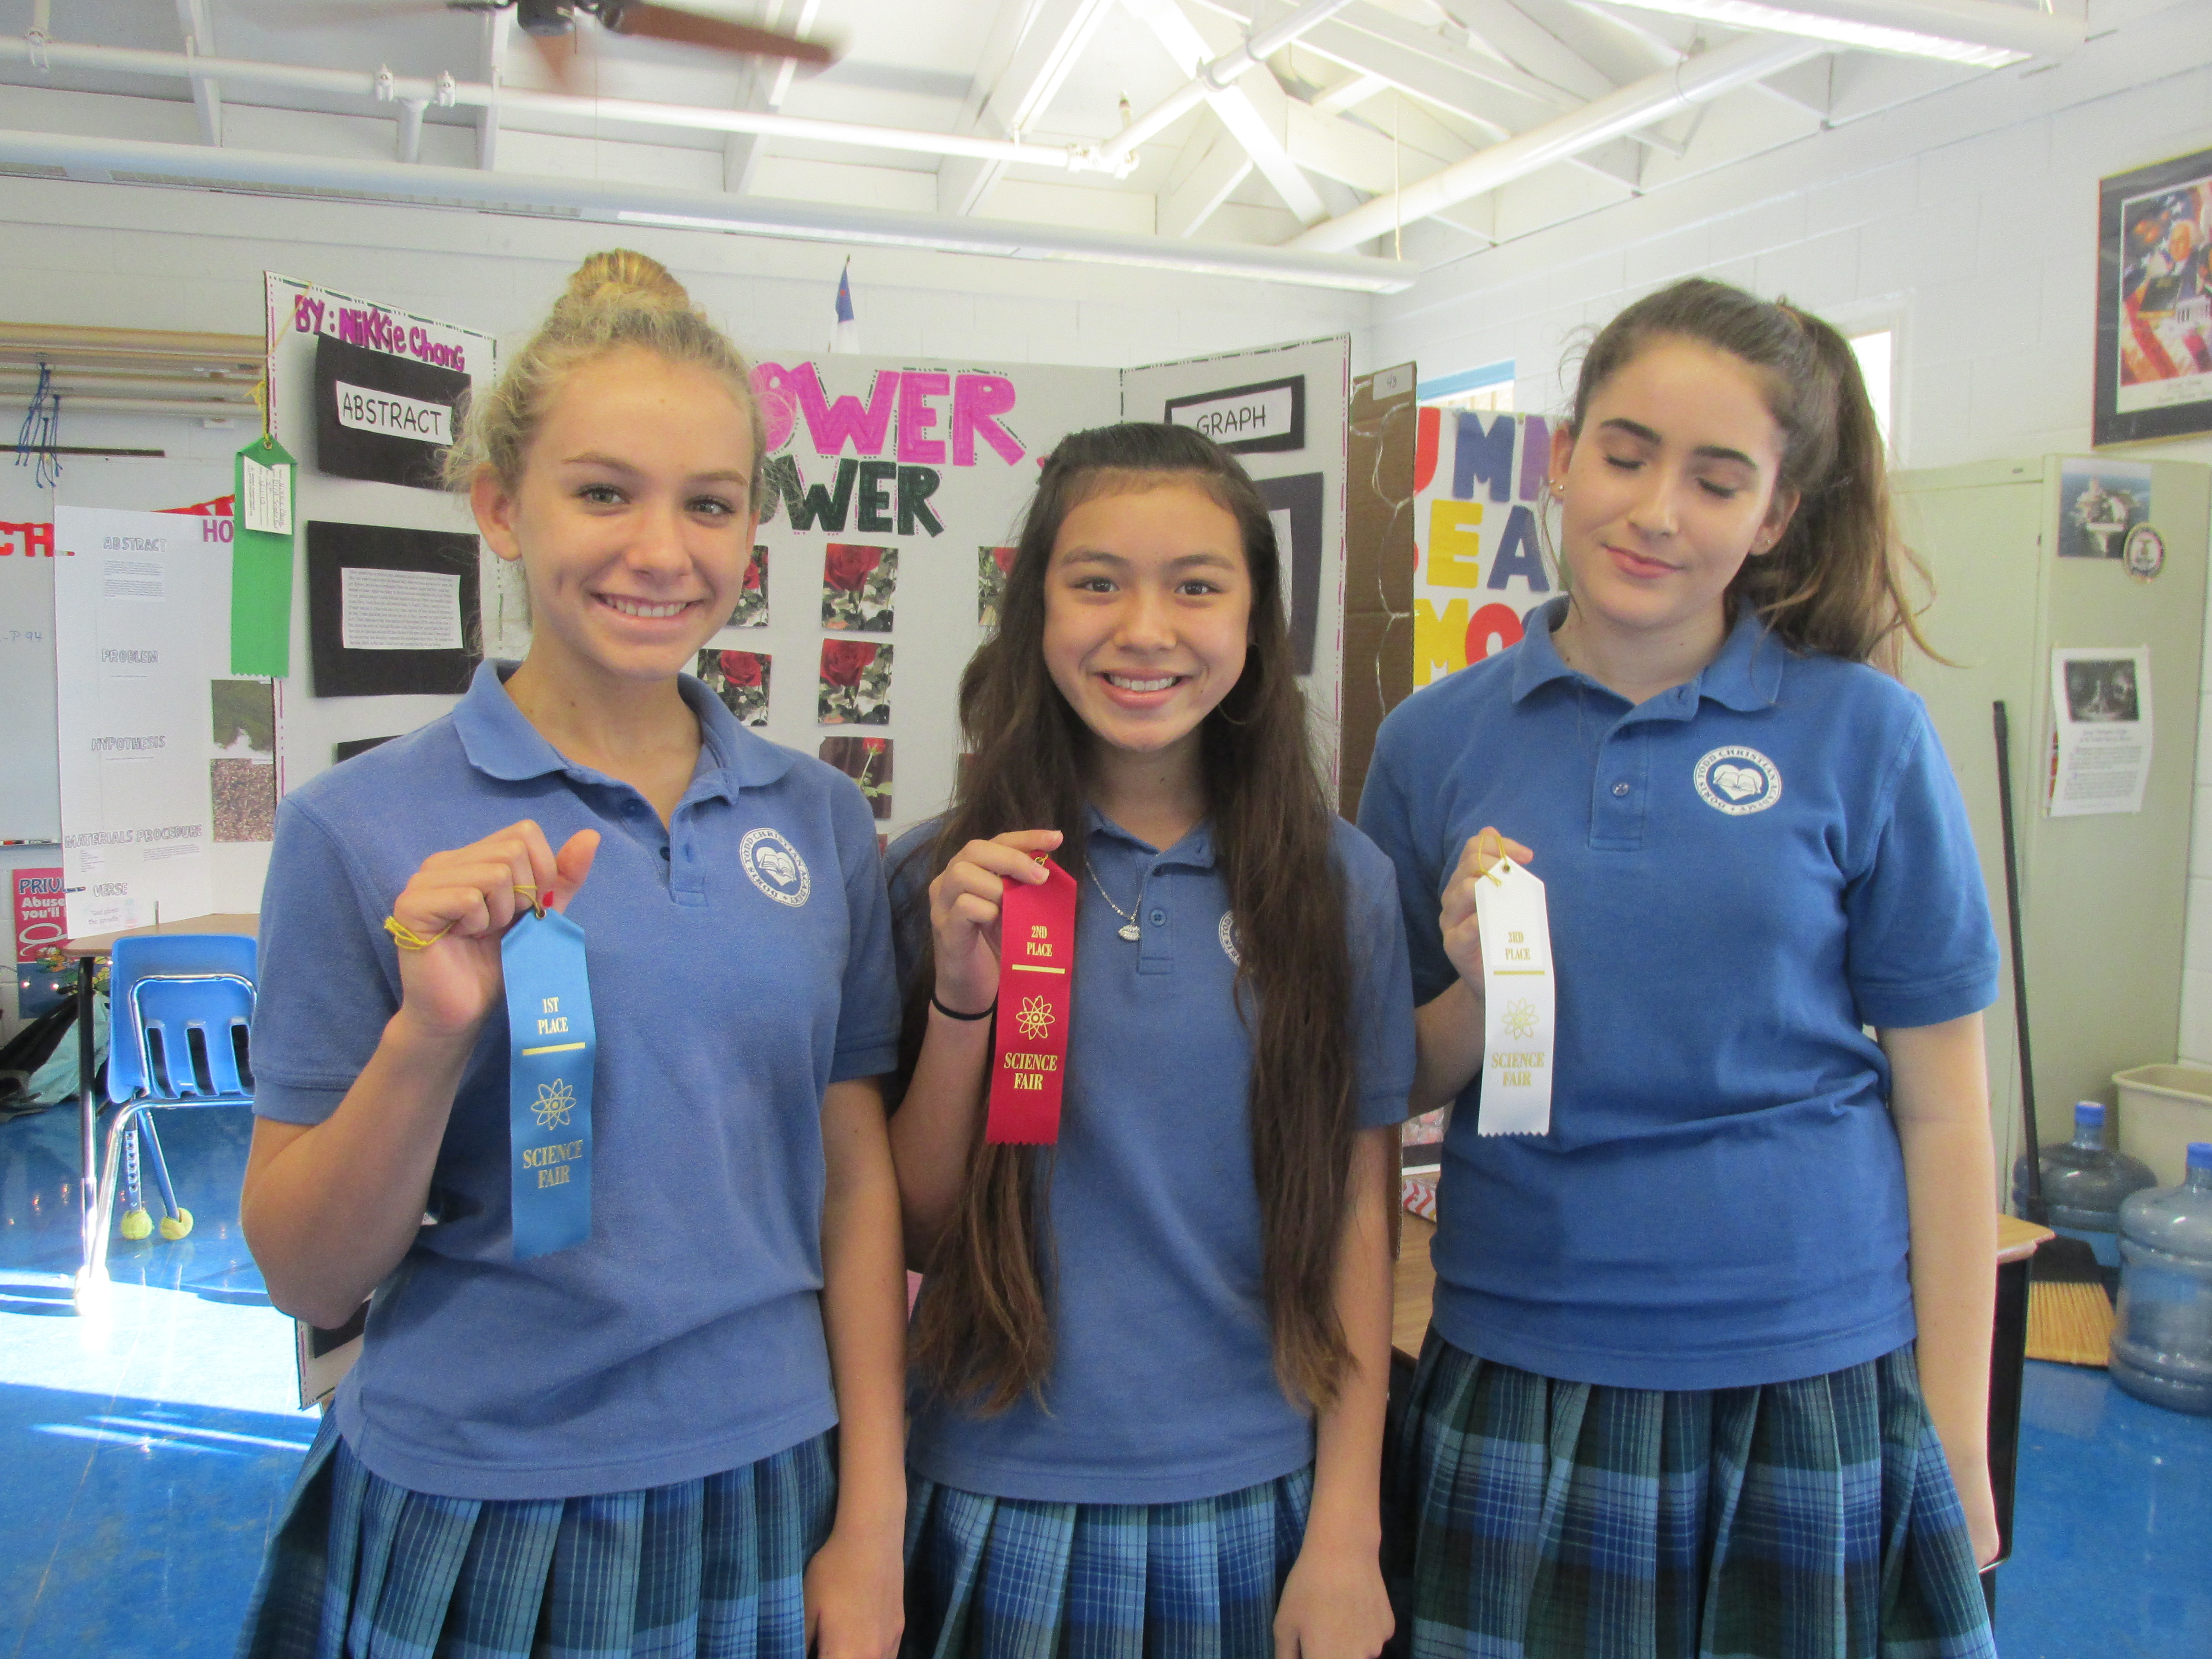 Dorris Todd Science Fair eighthgrade winners(left to right) Kaya Dugan, first place; Nikkie Chong, secondplace;and Laura Rowland third place.